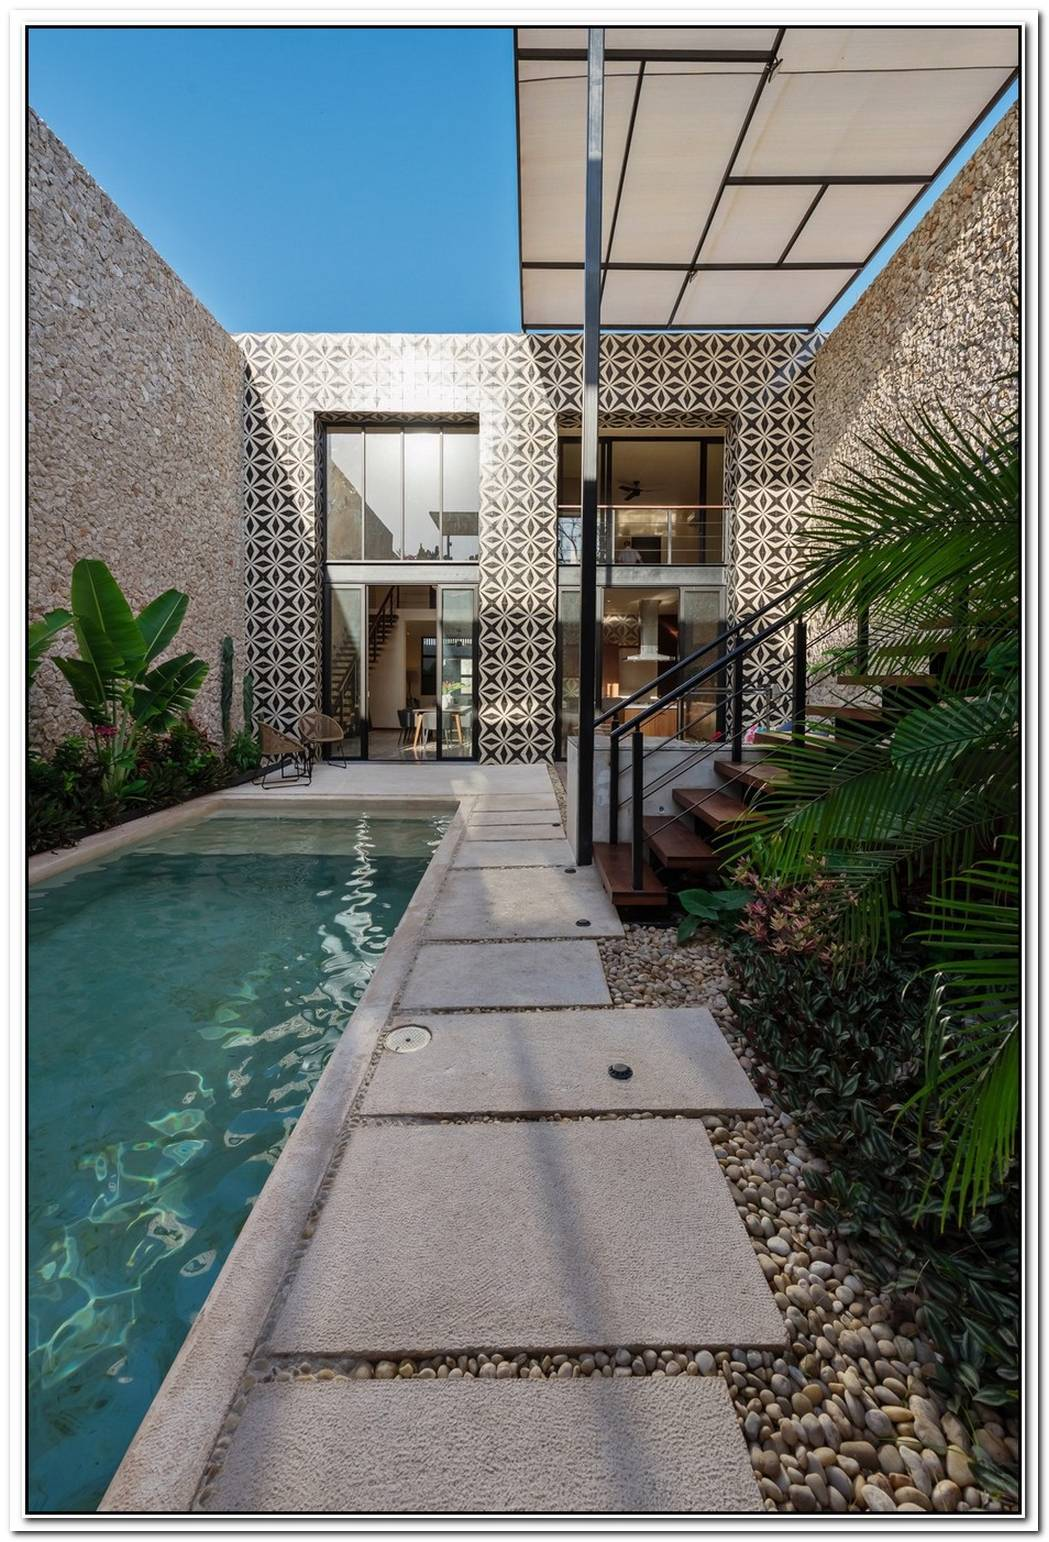 Unique Stone And Mosaic Work Wows In This Modern Home Design